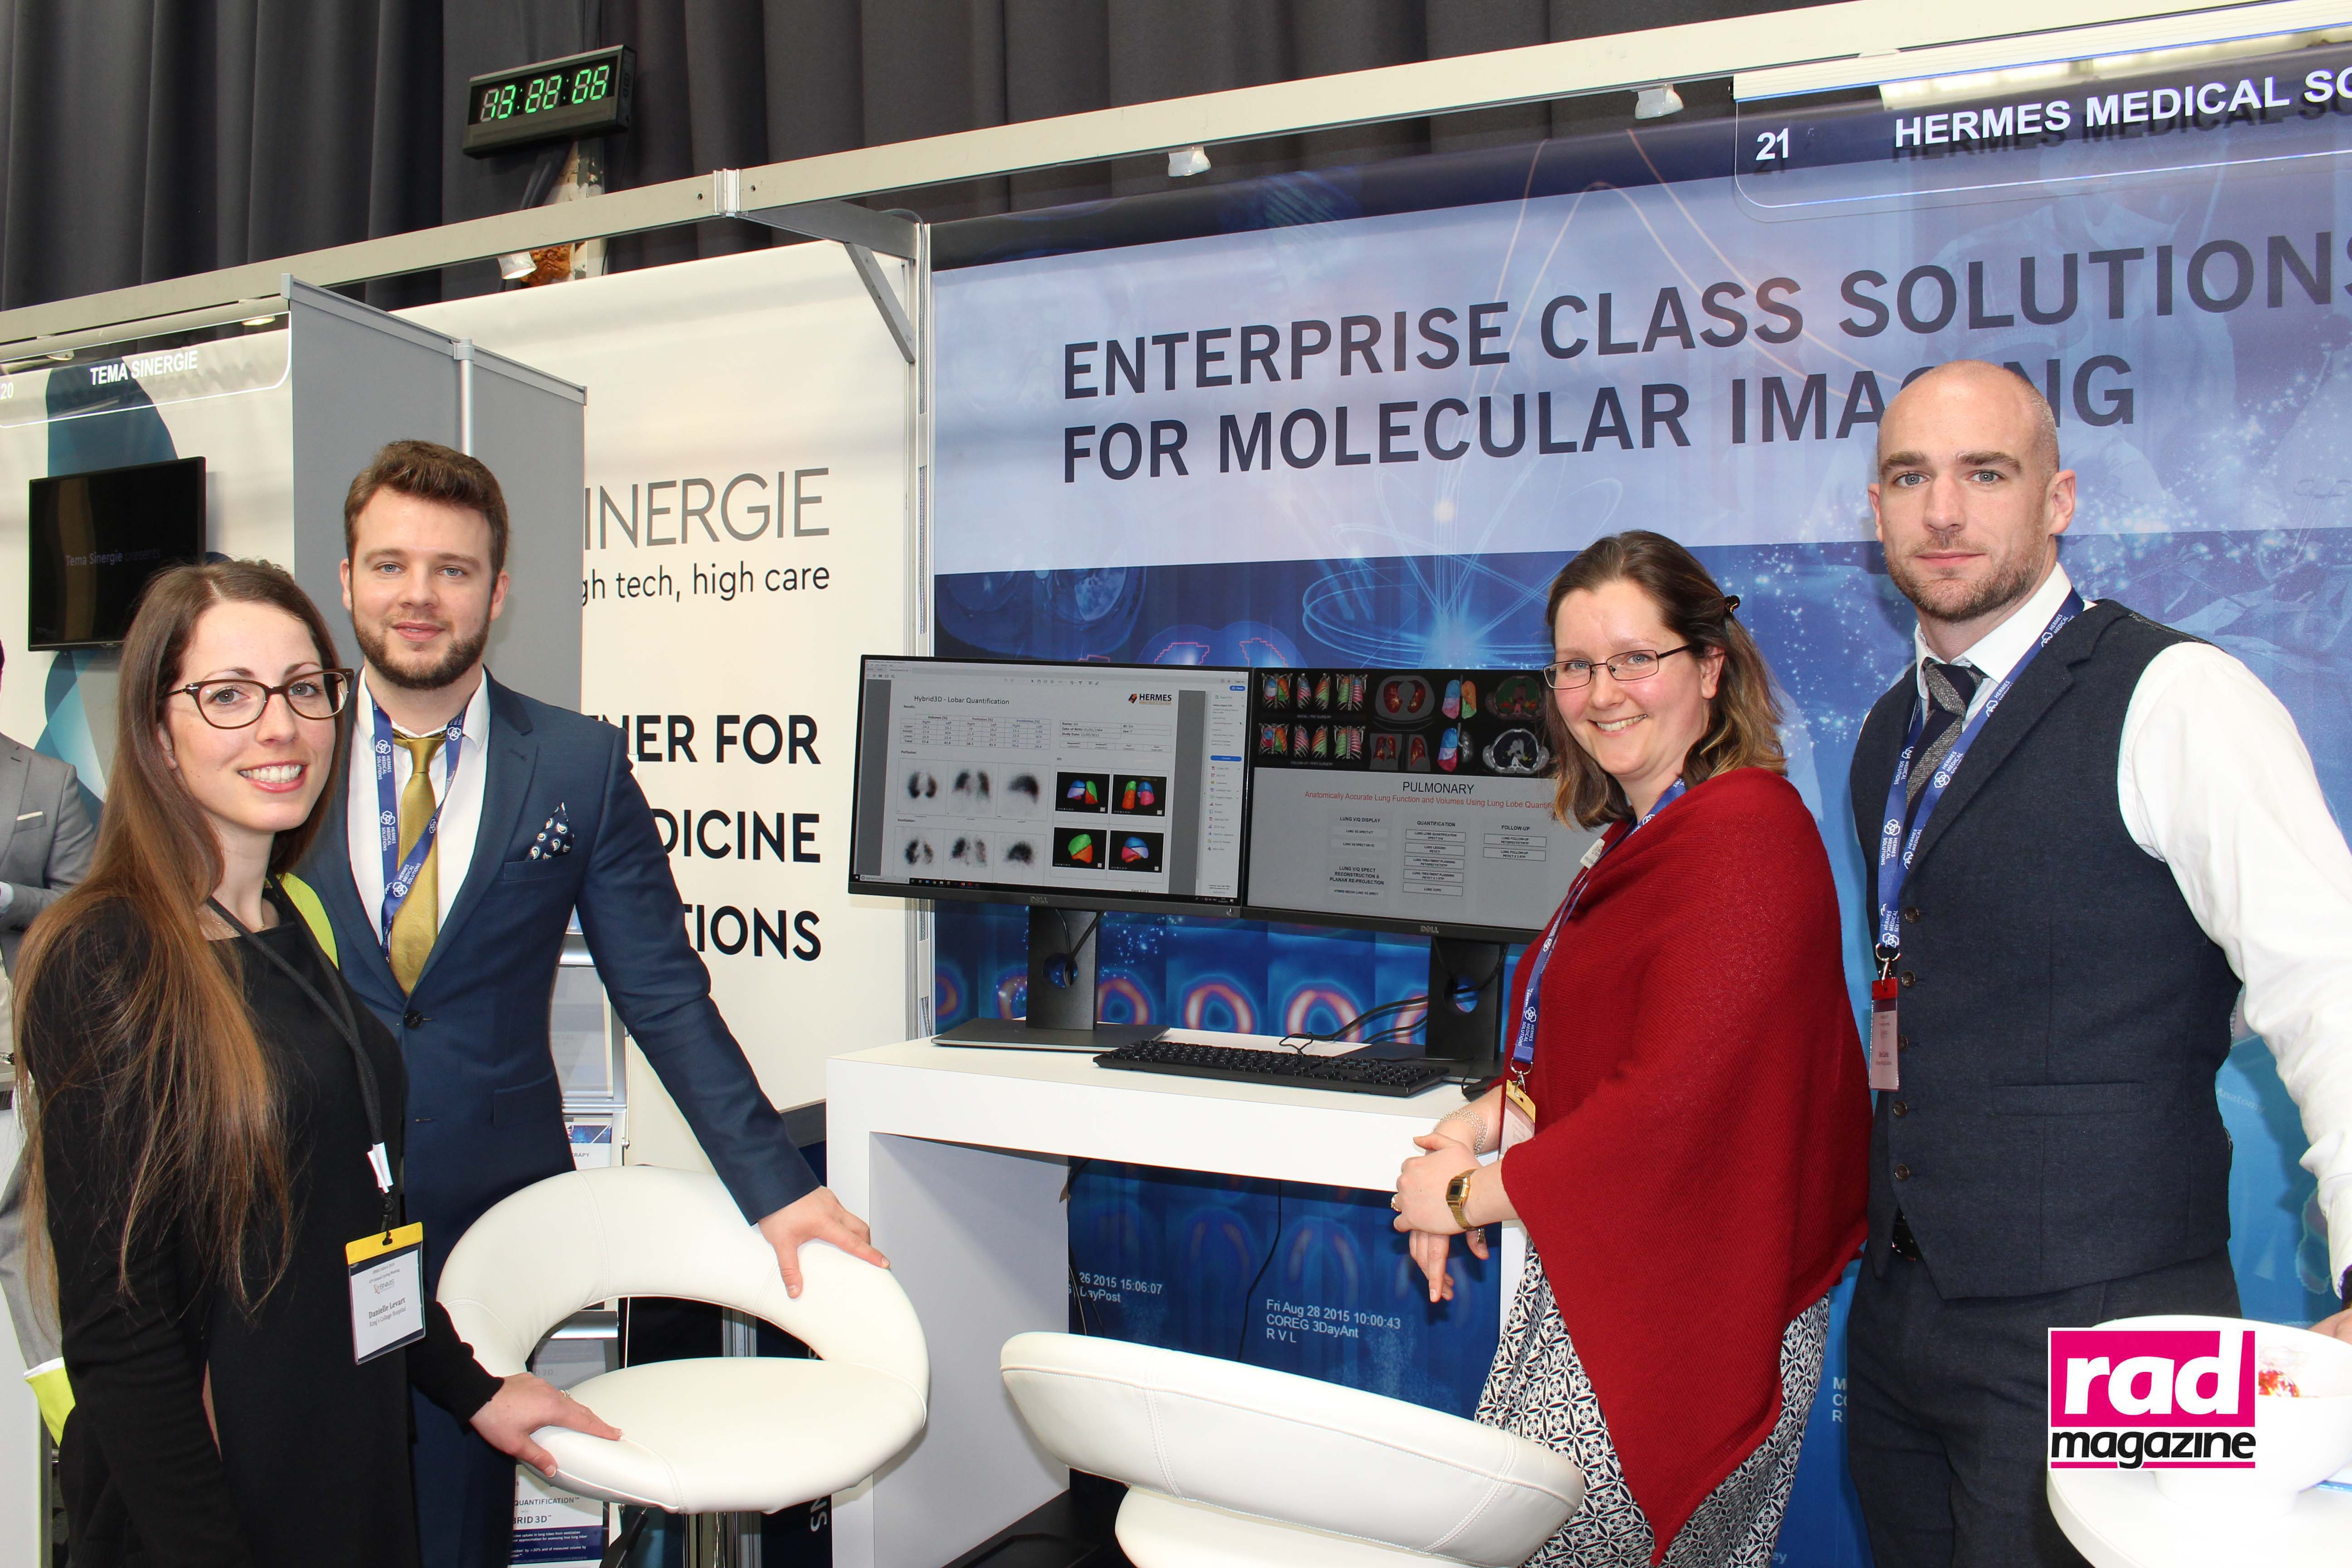 British Nuclear Medicine Society 2019 Hermes Medical Solutions